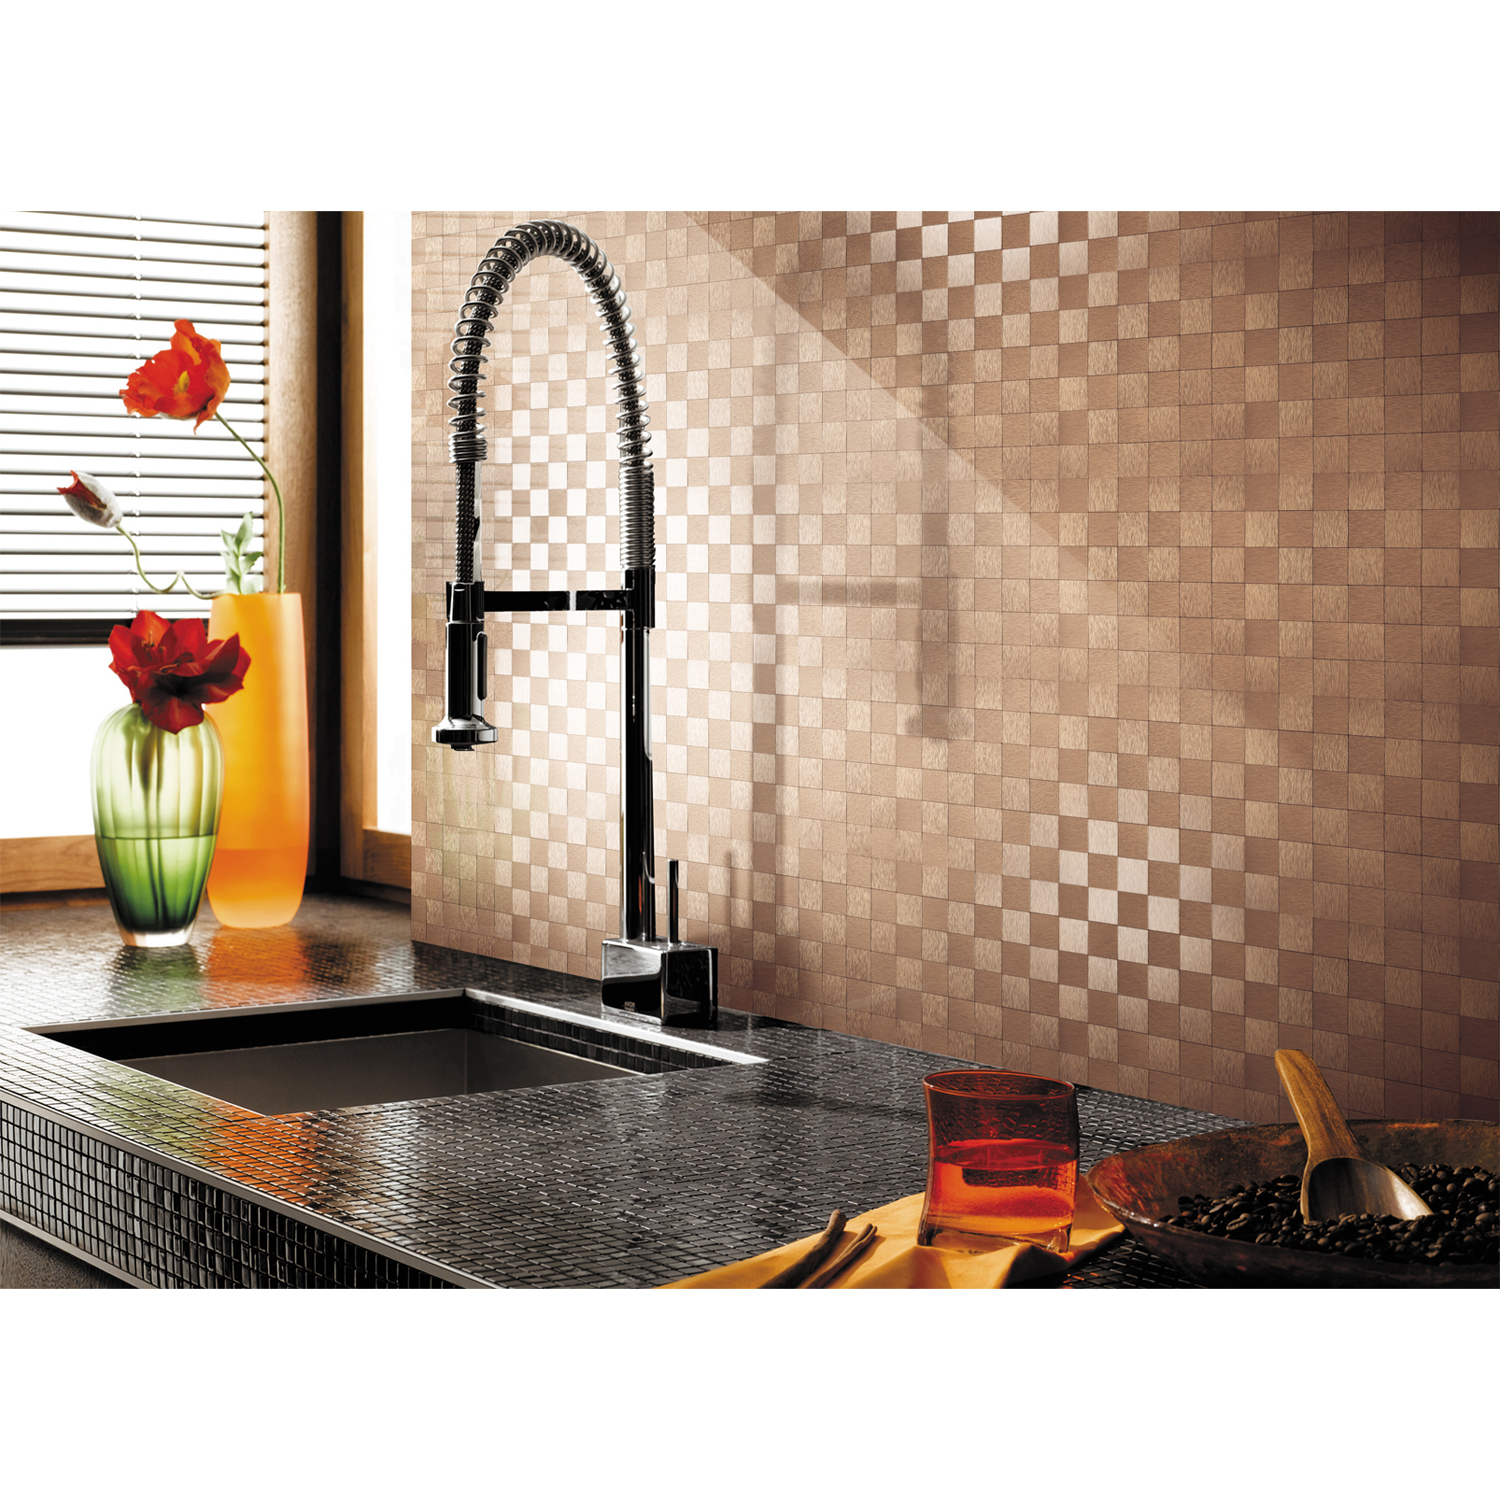 "Art3d Peel and Stick Metal Backsplash Peel and Stick Kitchen Tile, 12"" x 12"" Copper"